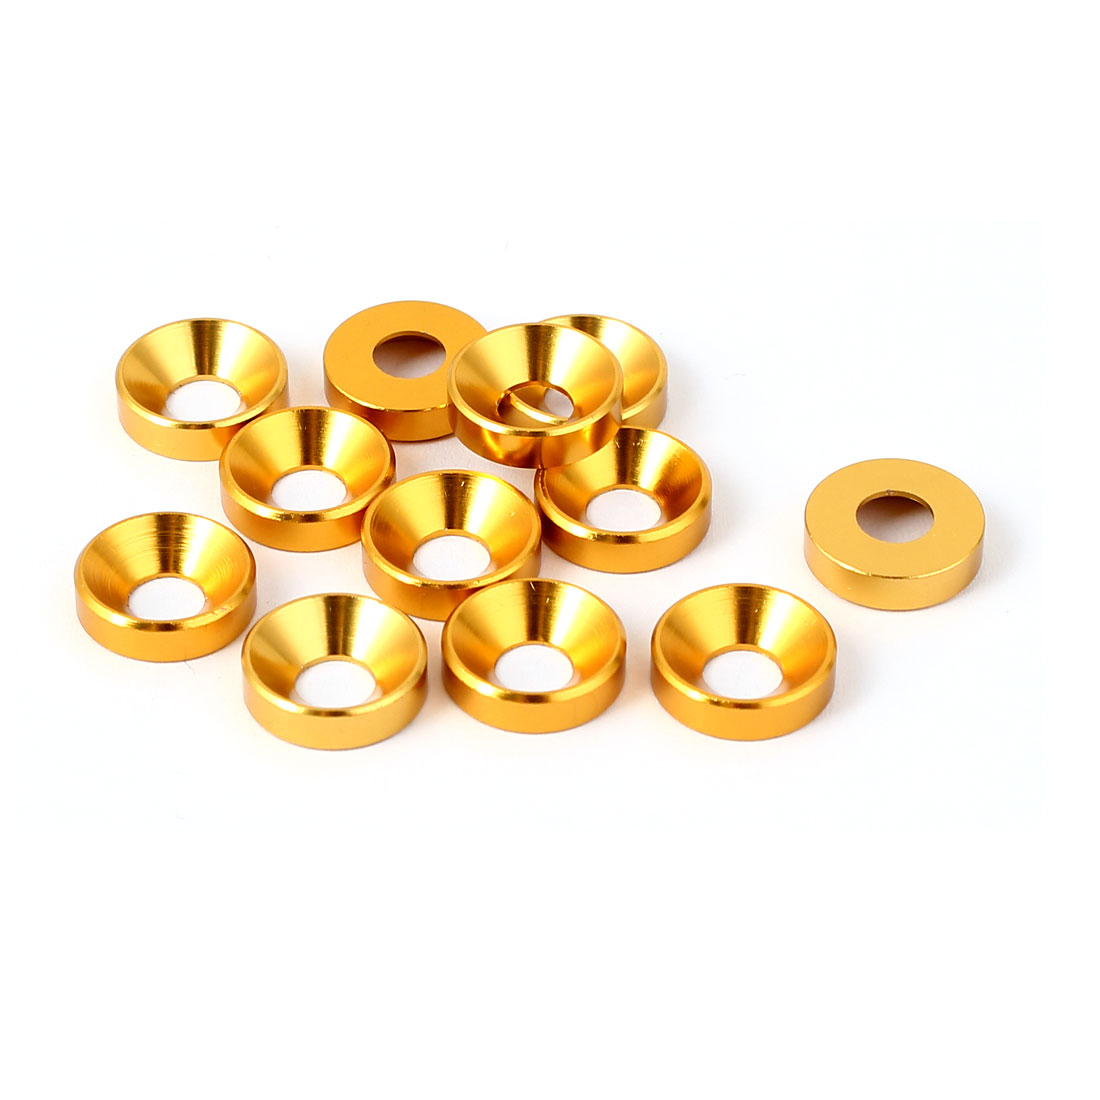 M5 Flat Head Screw Bolt Aluminum Countersunk Washers Gold Tone 12 Pcs